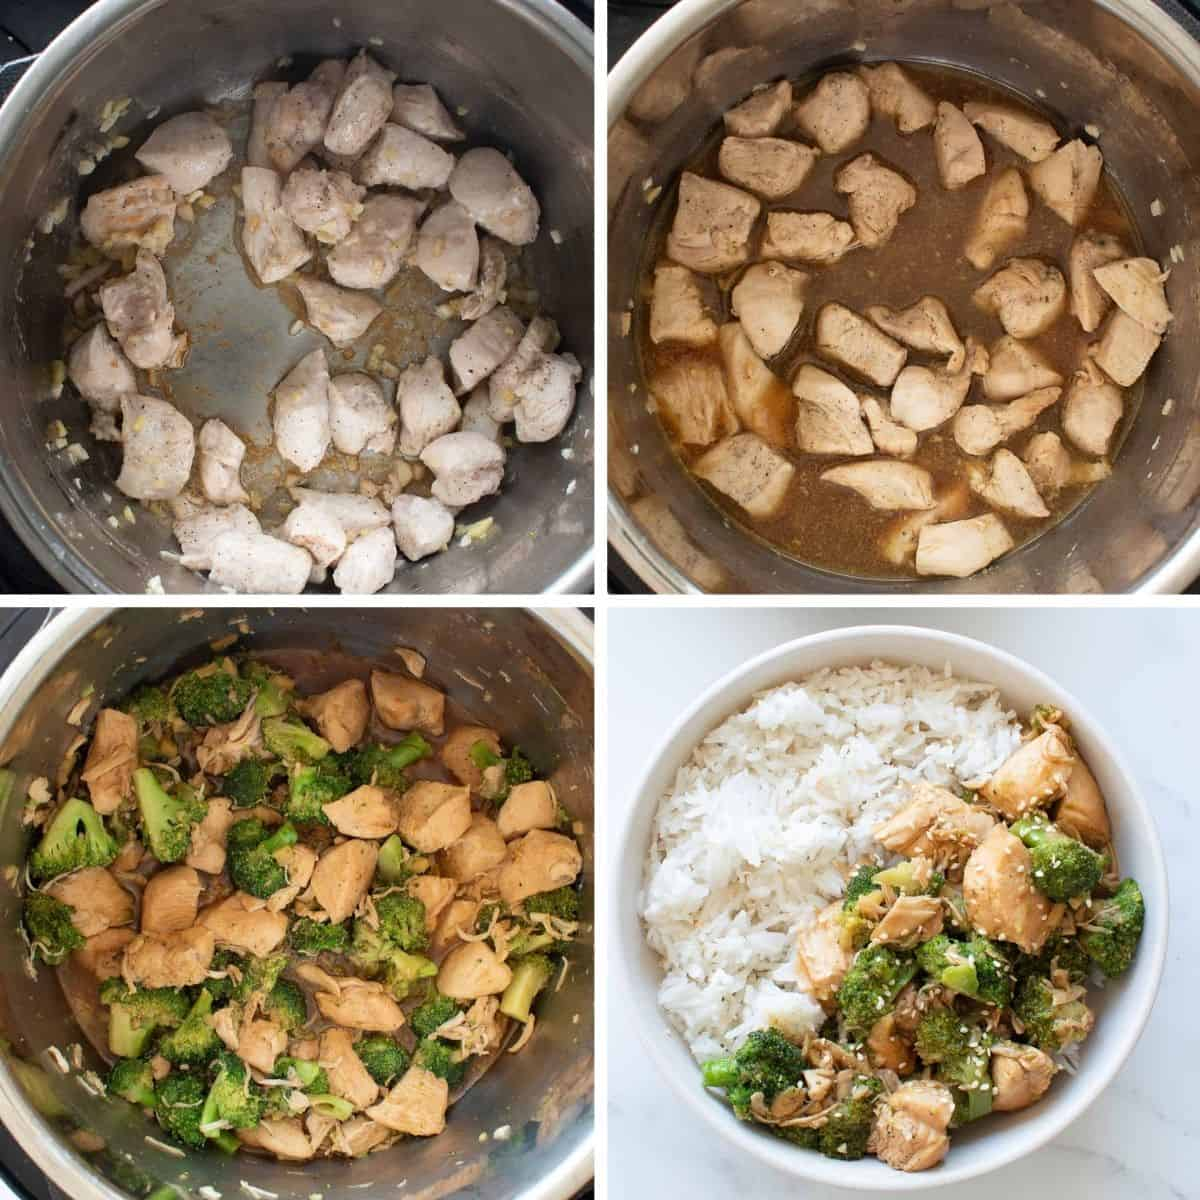 Step by step images showing how to make chicken and broccoli in an instant pot.